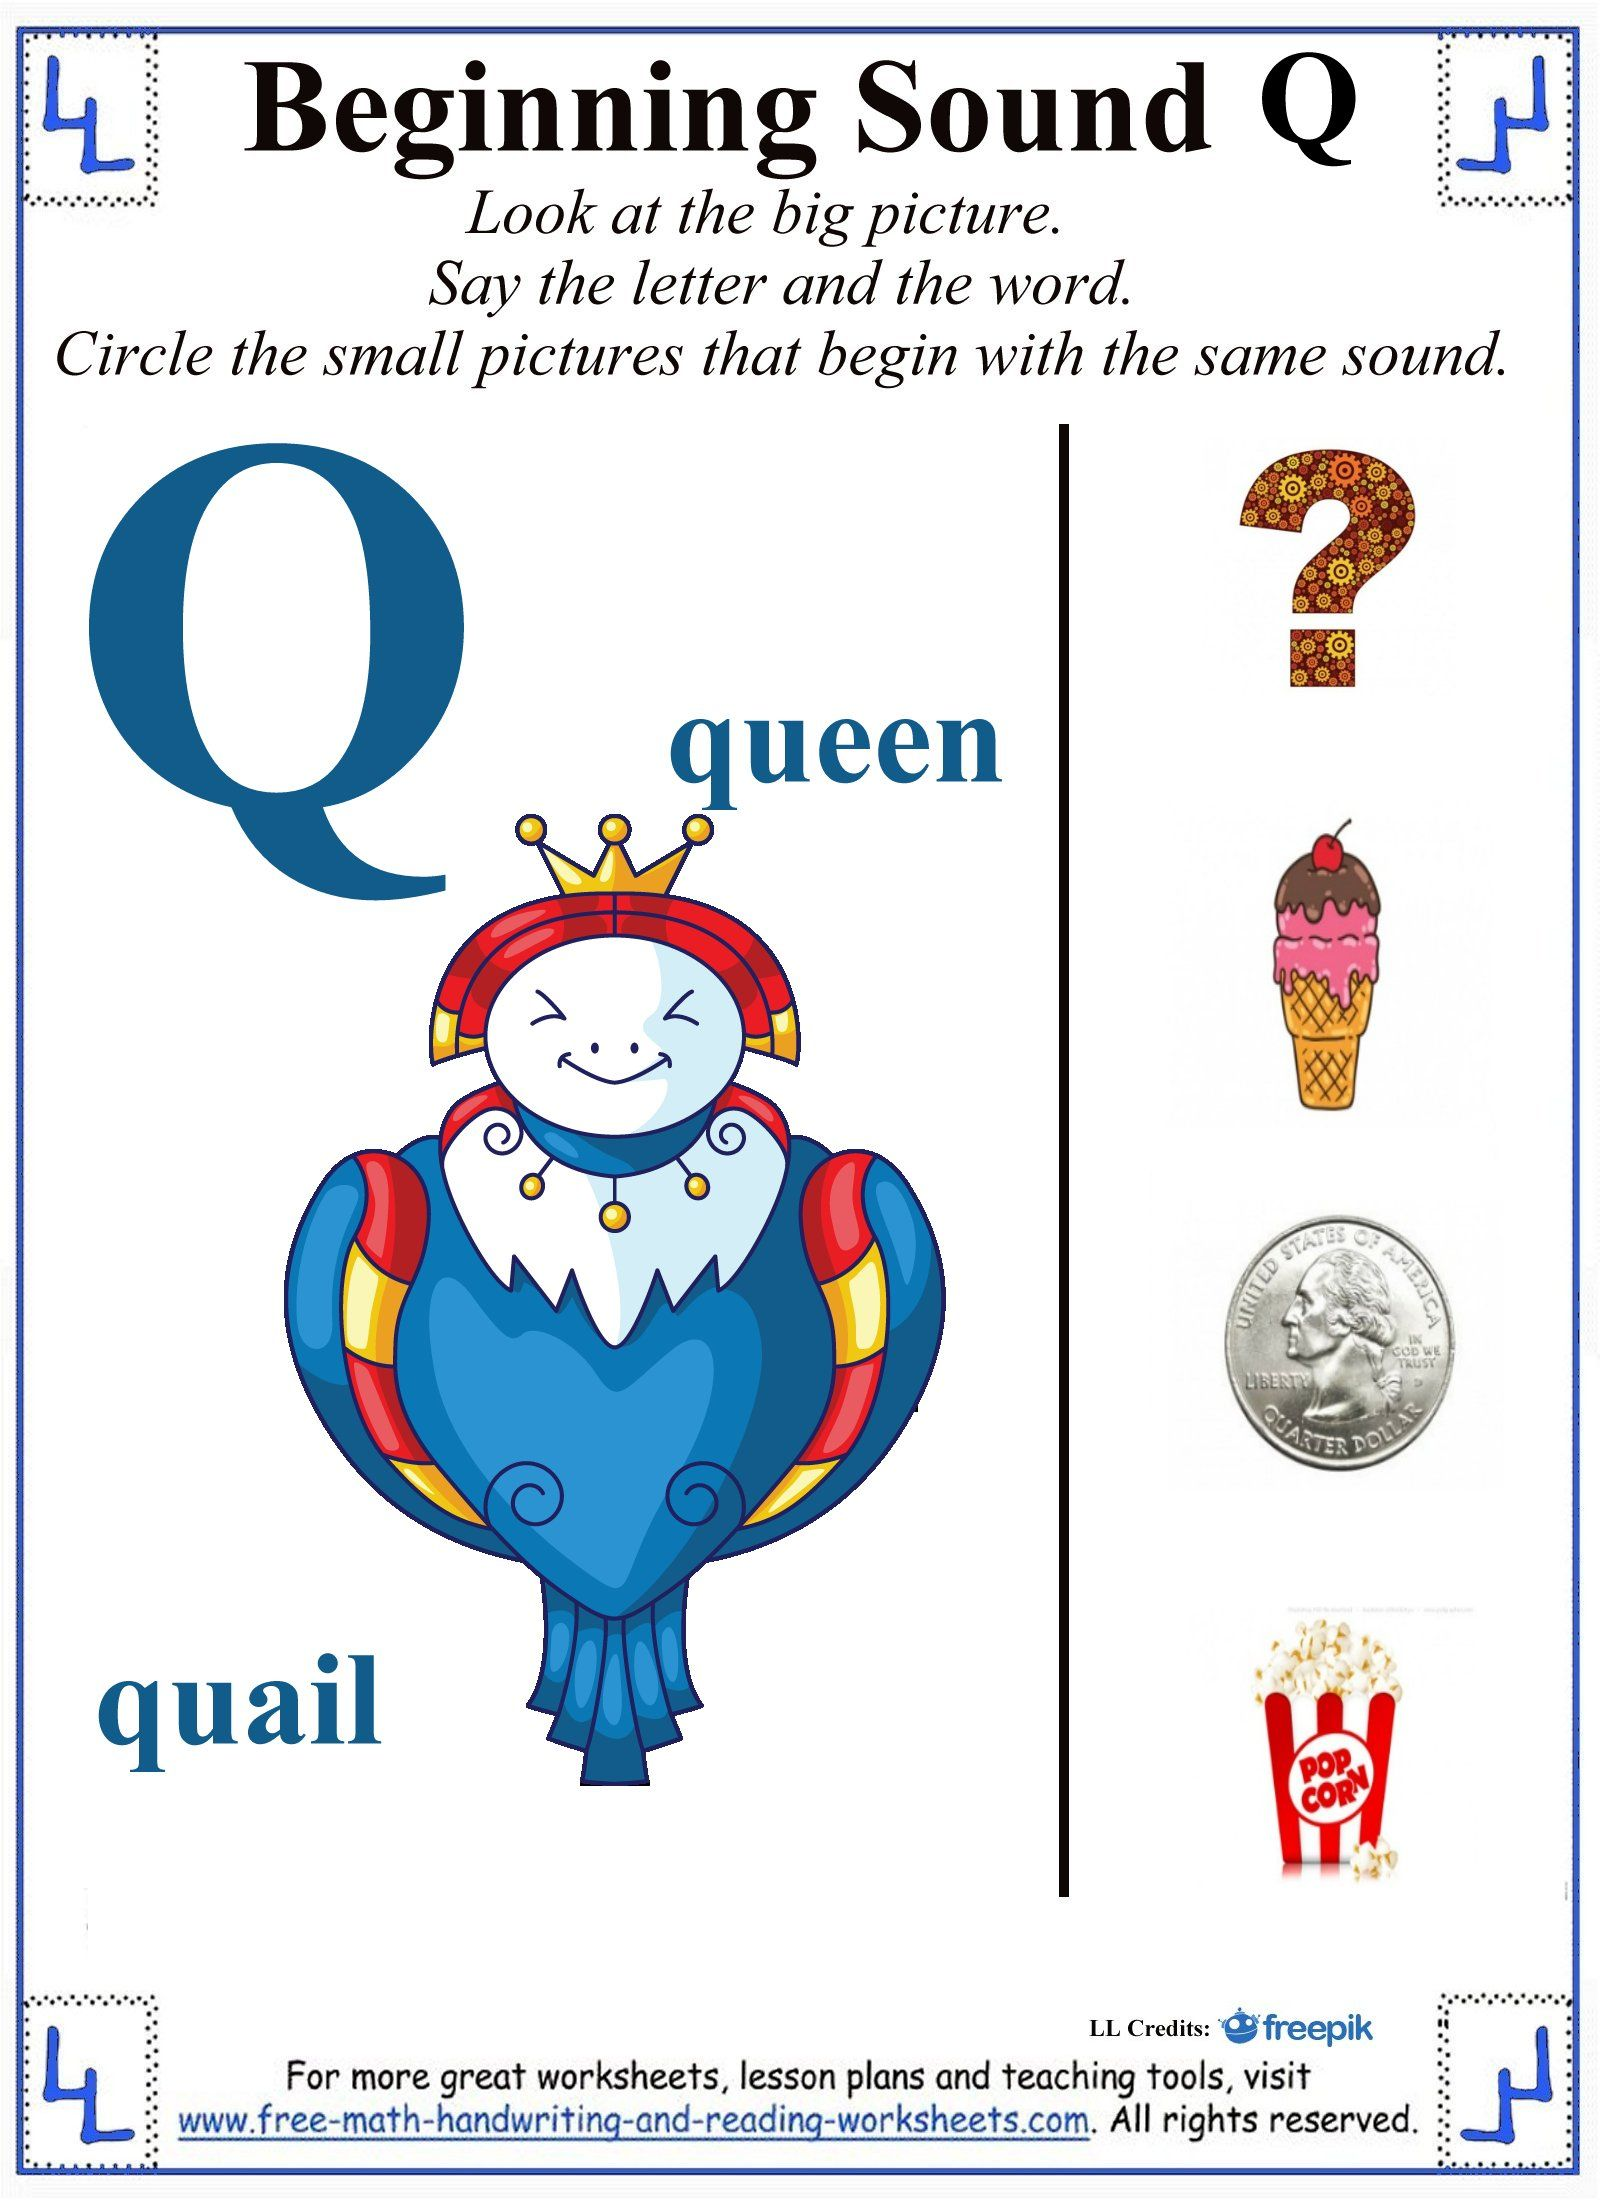 Printable letter q worksheets covering the beginning sound /qu/. More letter  worksheets, coloring pages, and alphabet activities available.